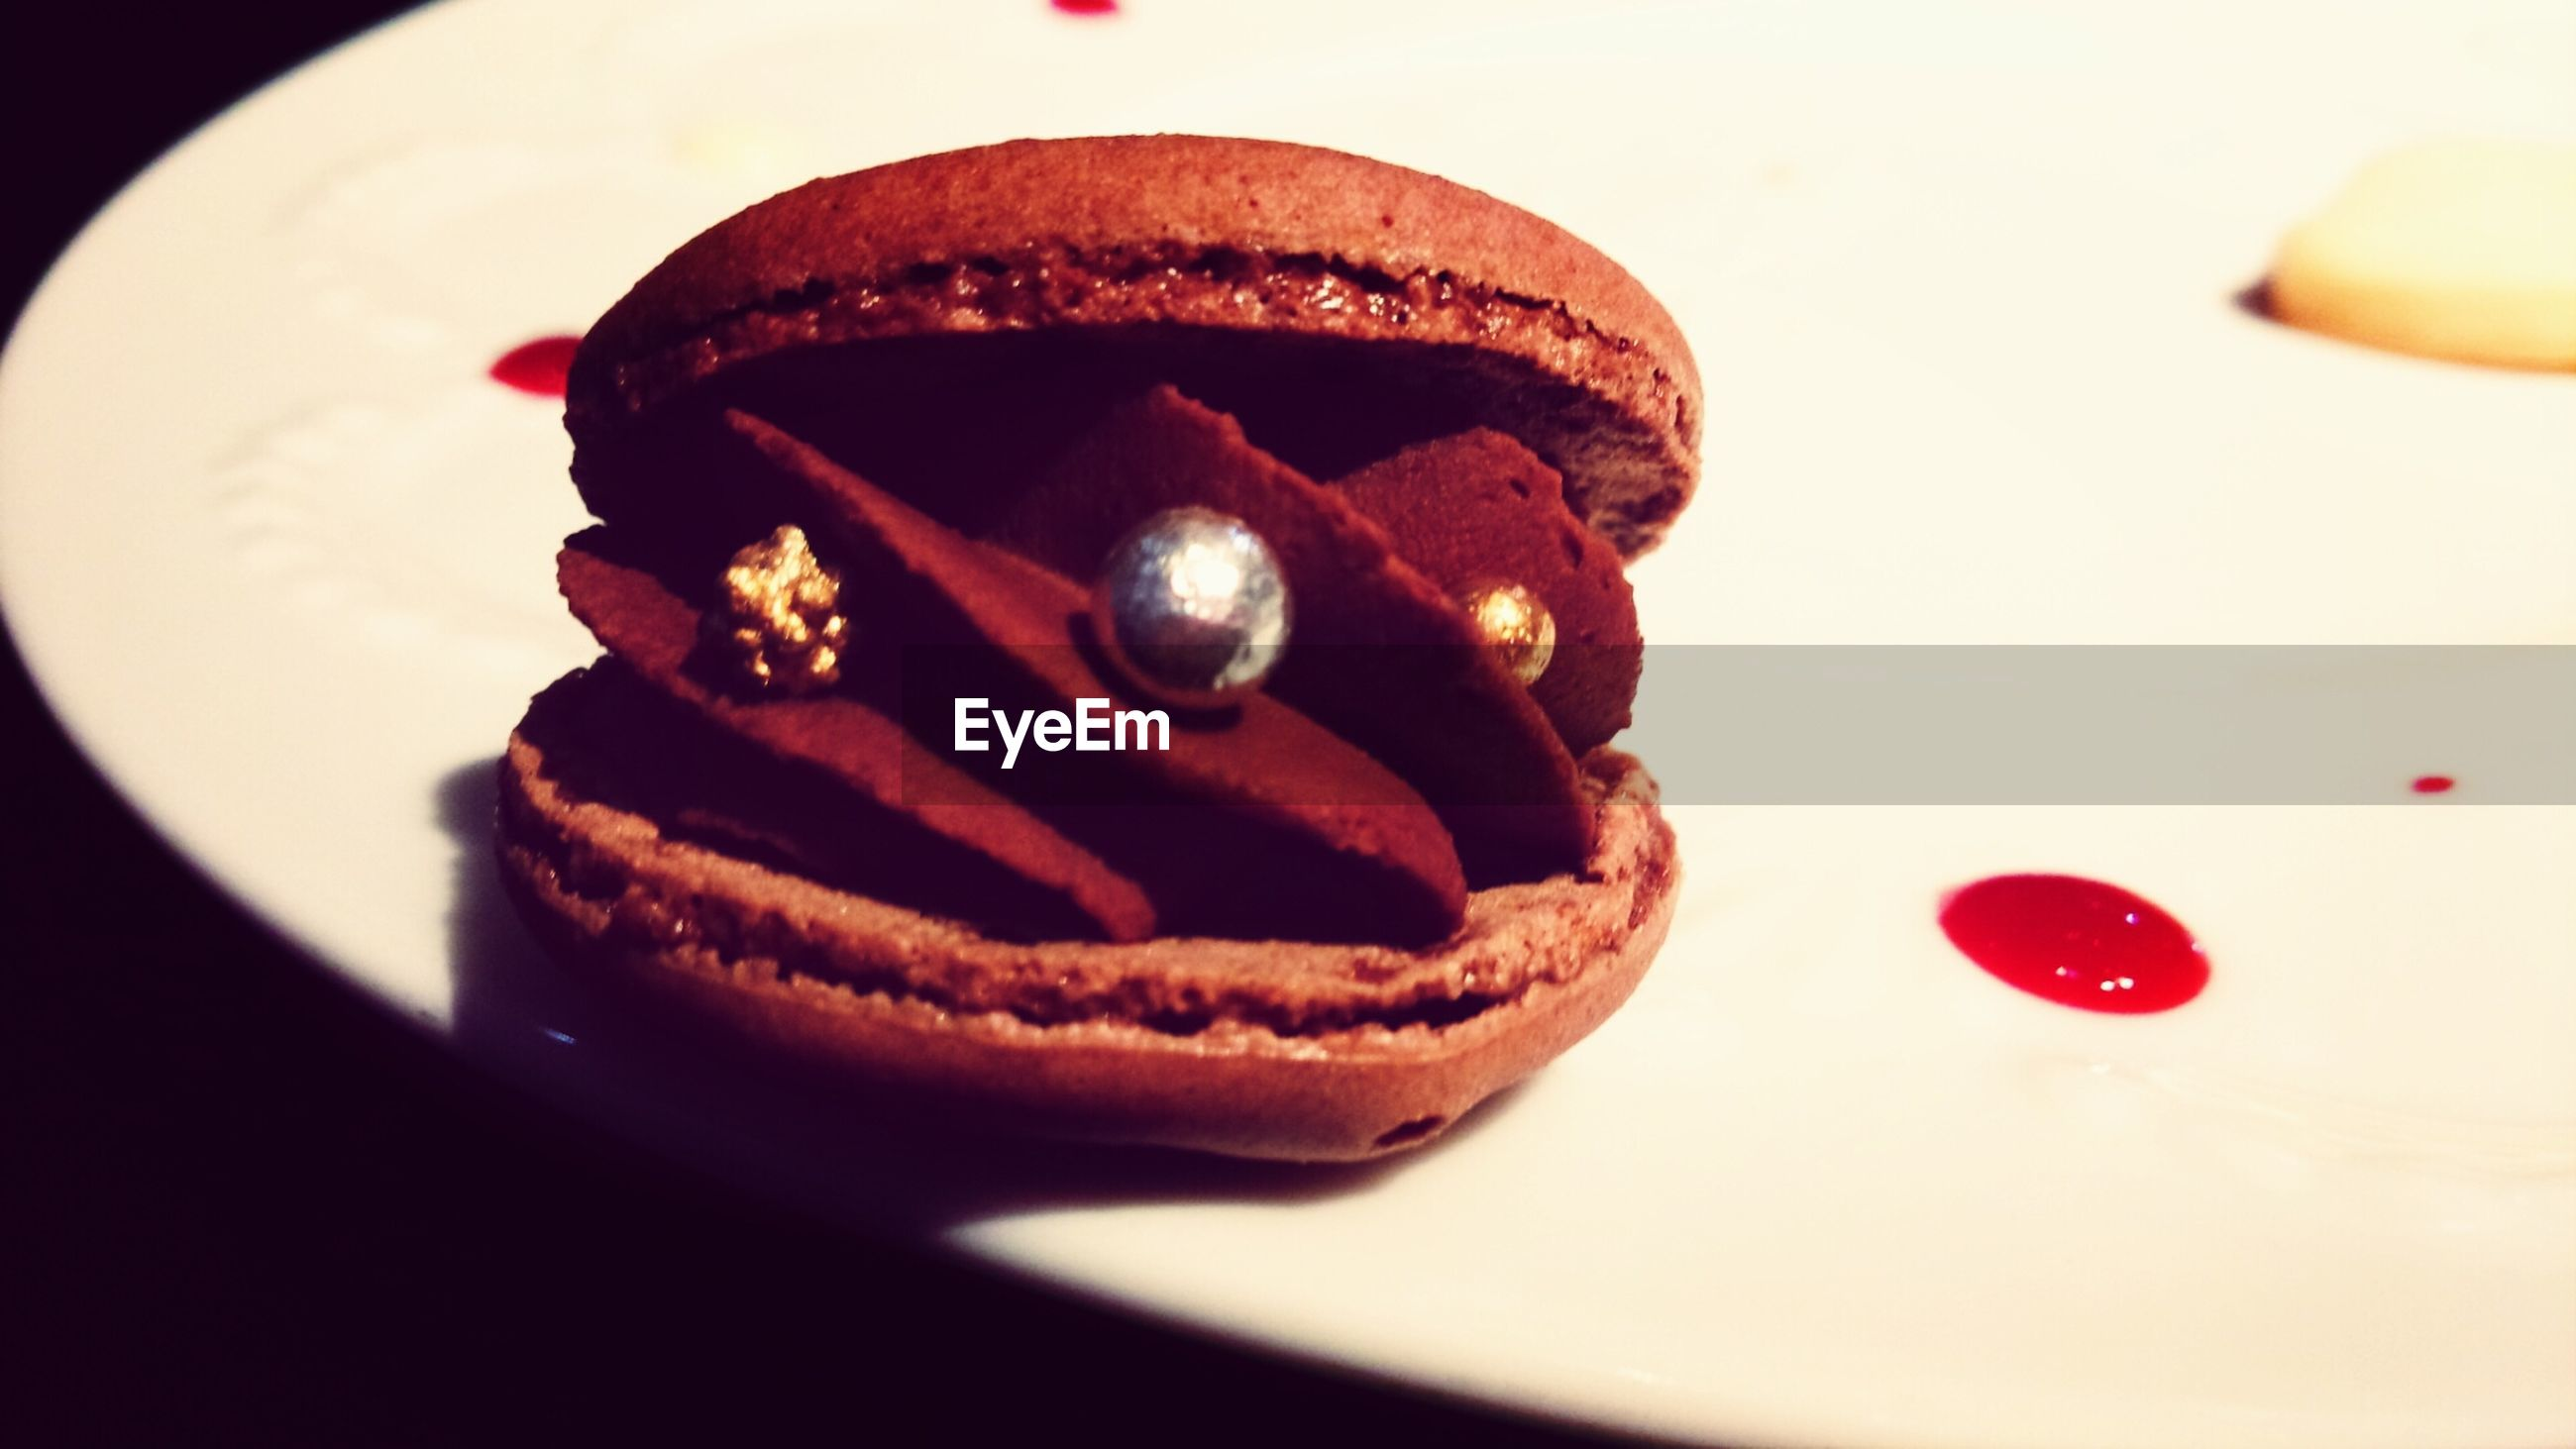 indoors, still life, close-up, sweet food, food and drink, dessert, food, freshness, indulgence, unhealthy eating, chocolate, red, focus on foreground, cake, single object, ready-to-eat, no people, heart shape, table, temptation